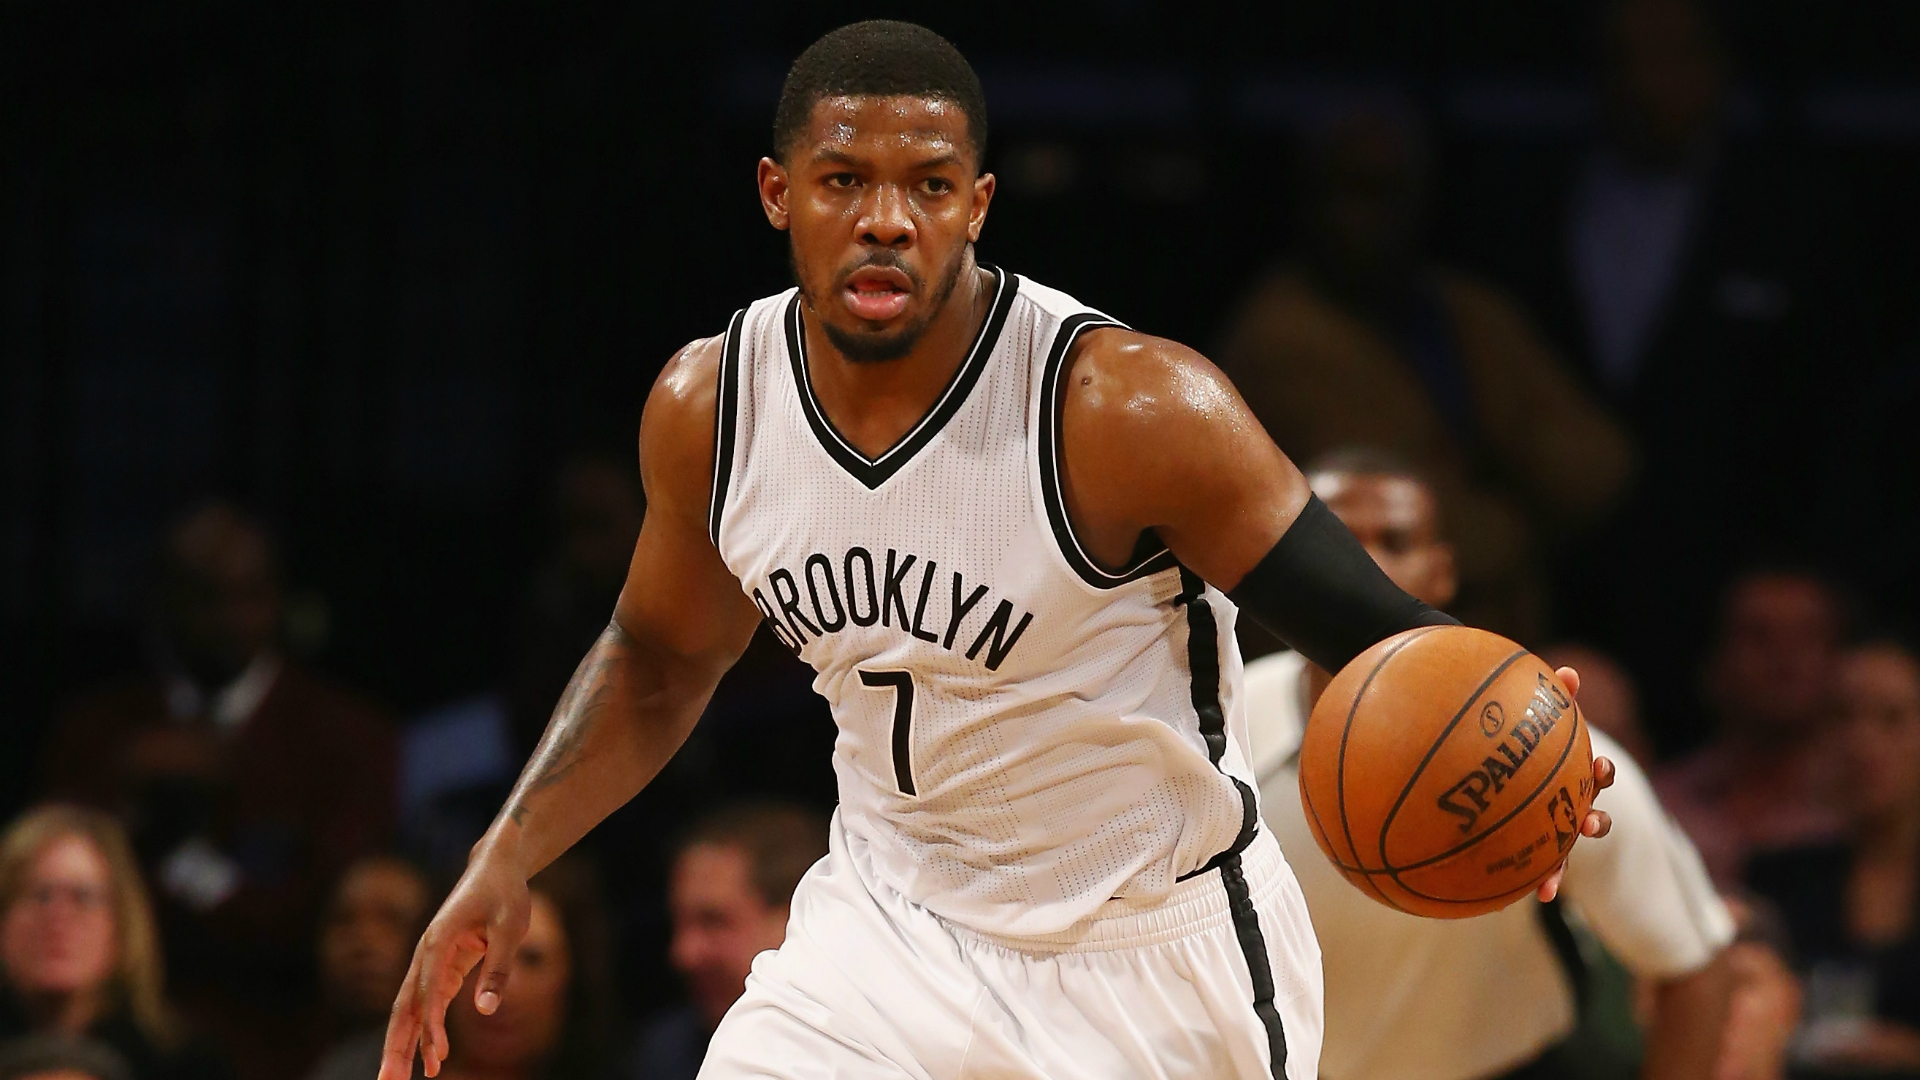 Joe Johnson commits to signing with Rockets after buyout